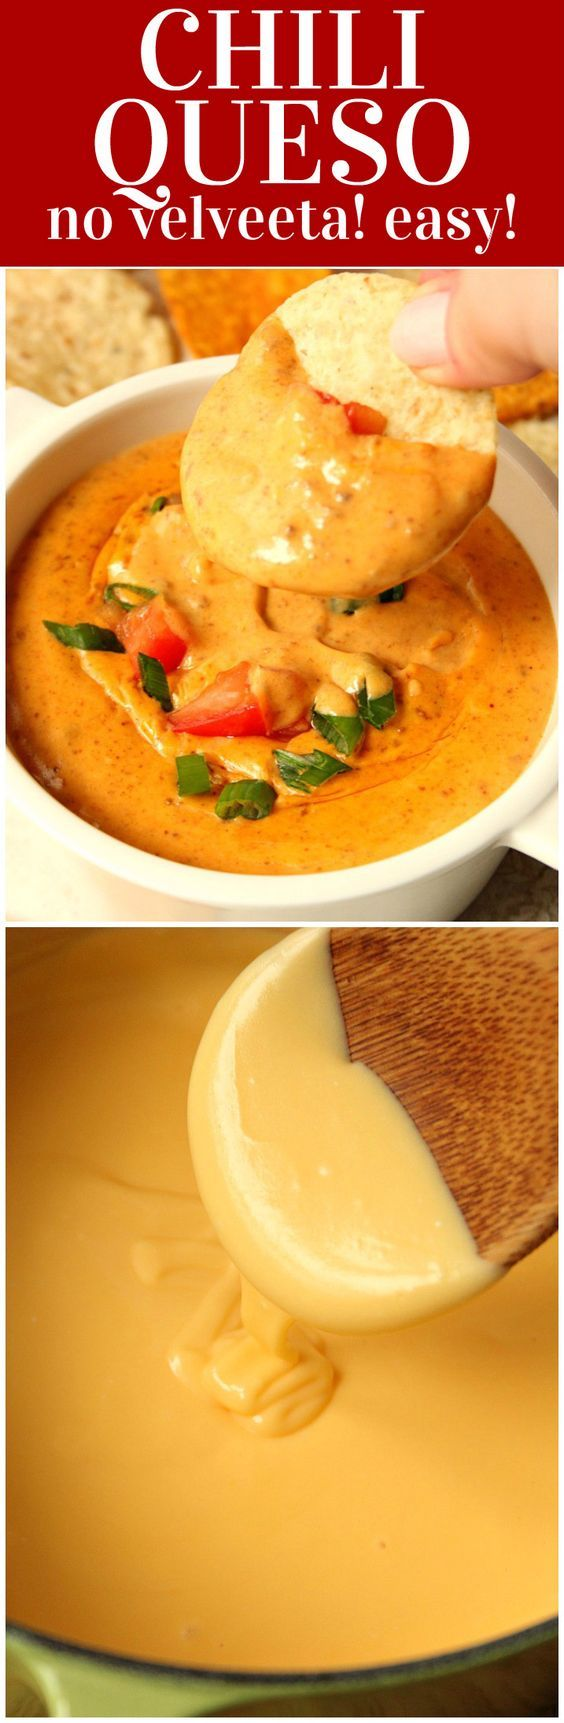 Chili Queso Dip Recipe - the best queso with chili made in 10 minutes! No Velveeta needed! A perfect dip for parties and game days!